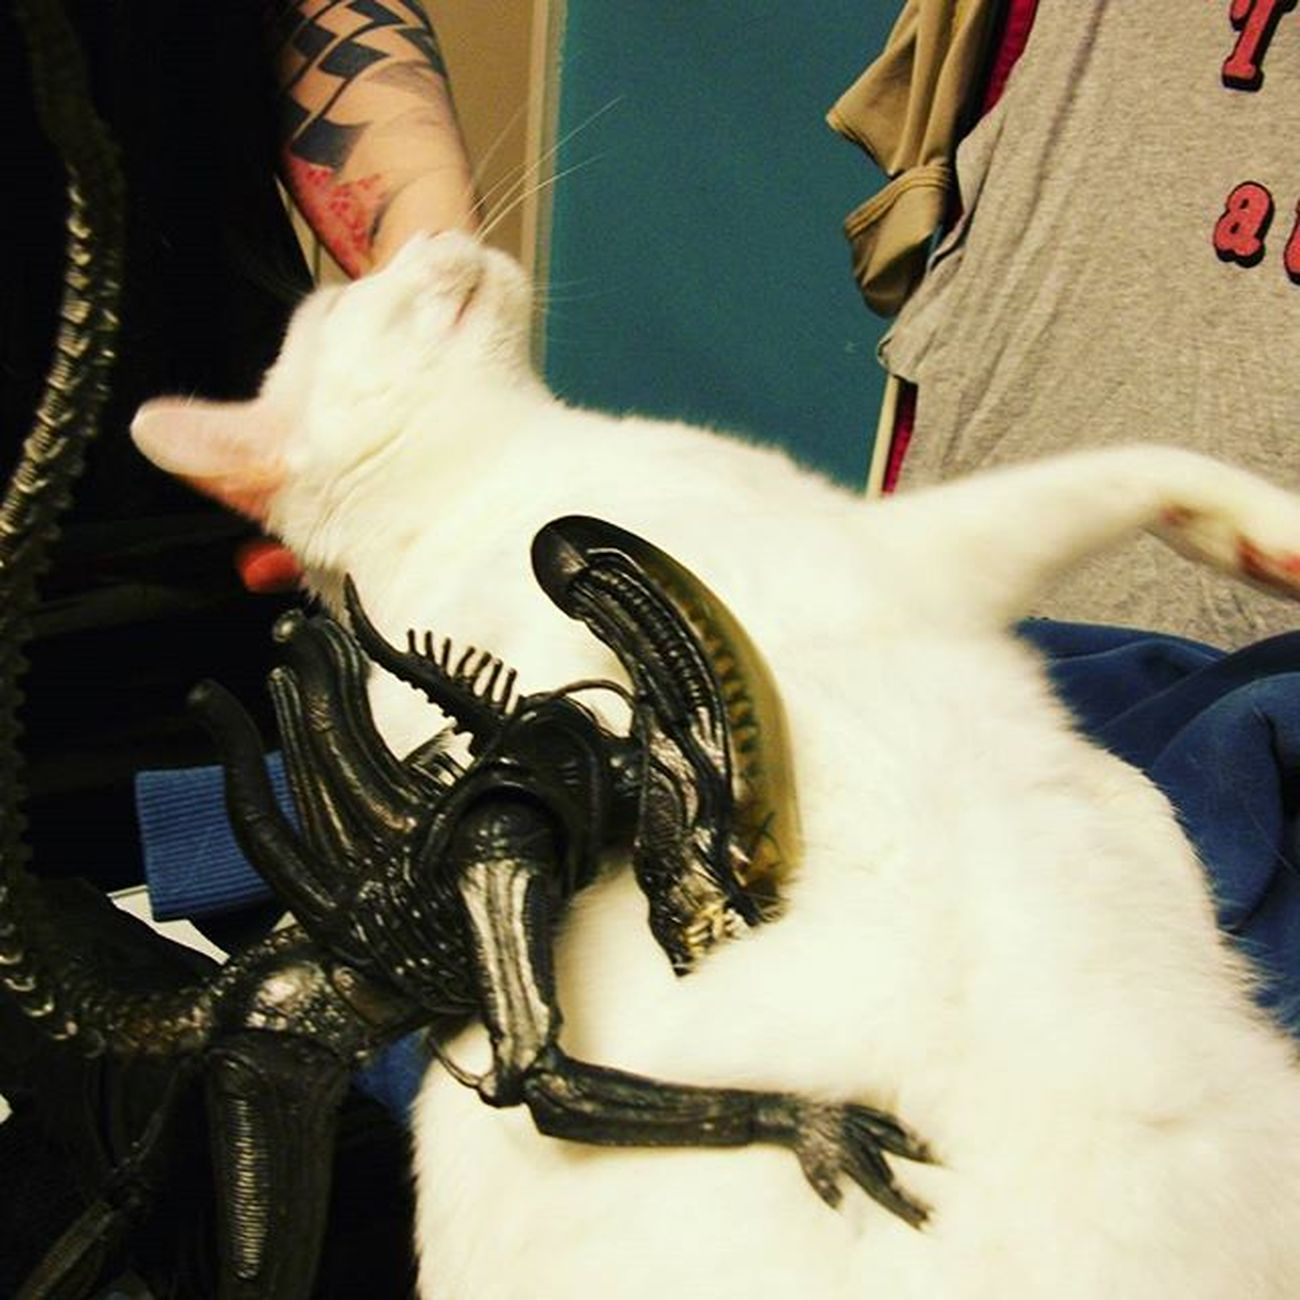 Despite his scary outward appearance Geoff really loves soft fluffy kittens. Toptoyphotos Toydiscovery Toyphotography Xenomorph Catsofinstagram Jinx Geoffthexenomorph Figpics